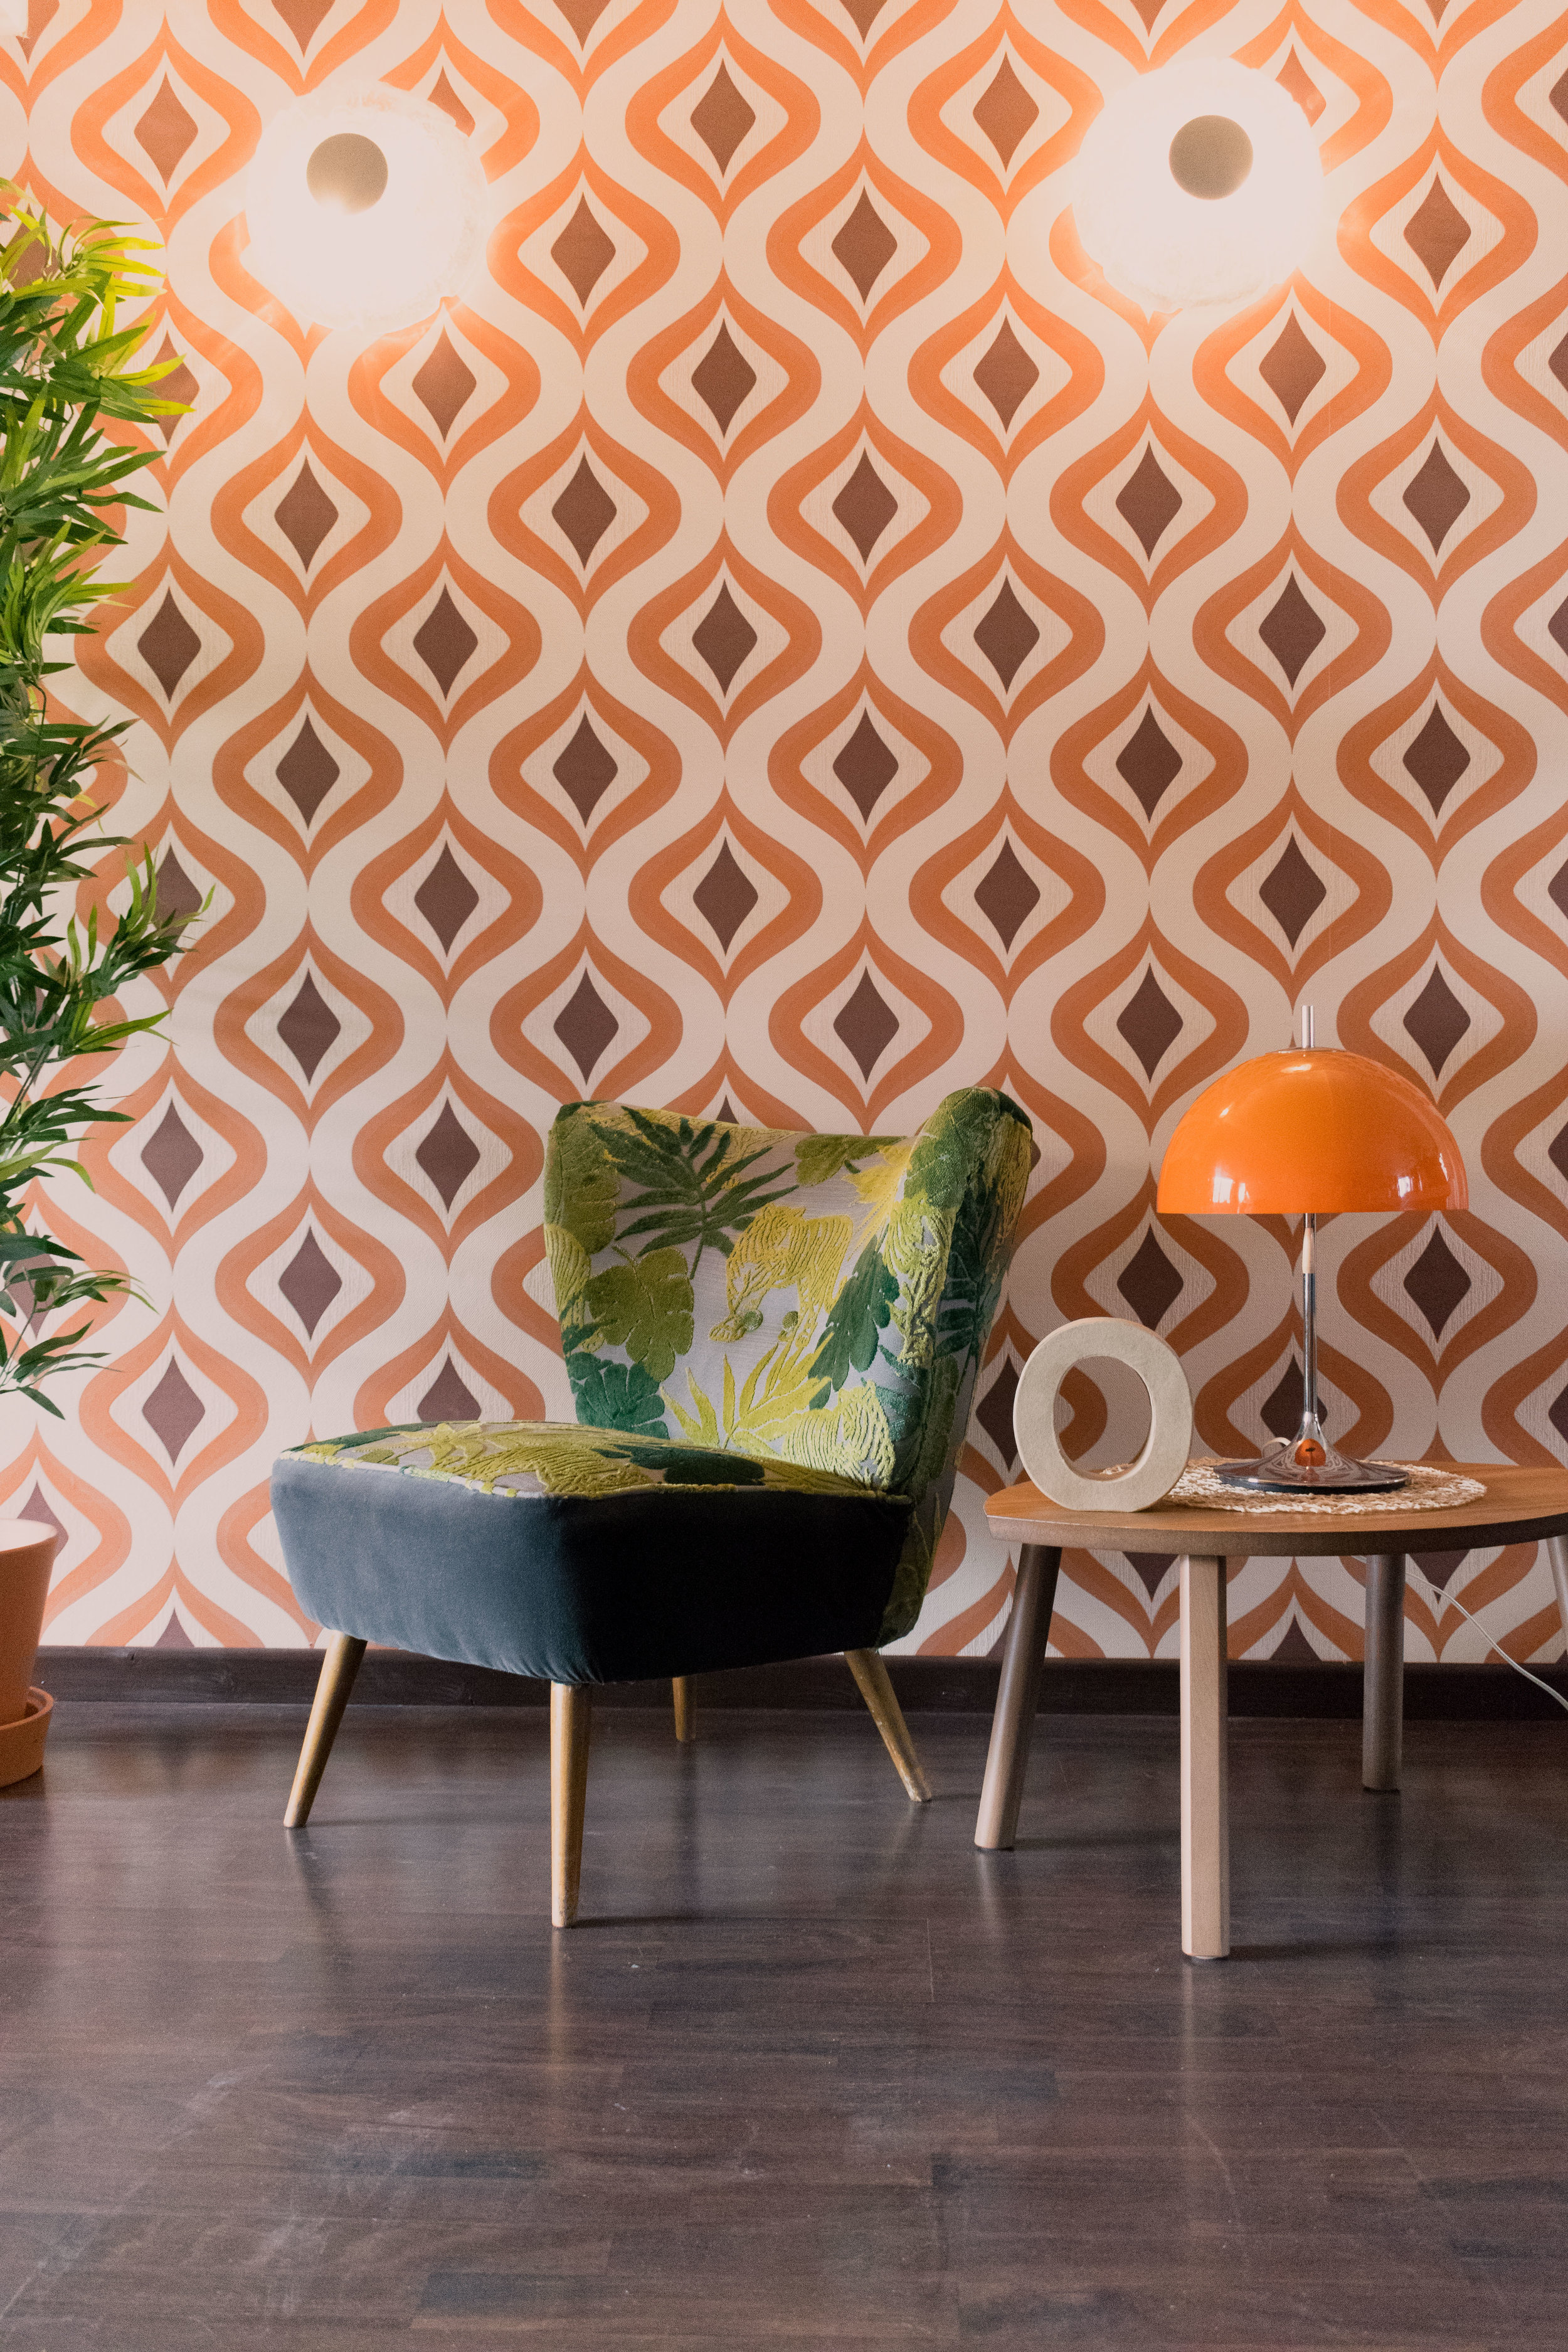 Avocado green chair and 1970's wallpaper